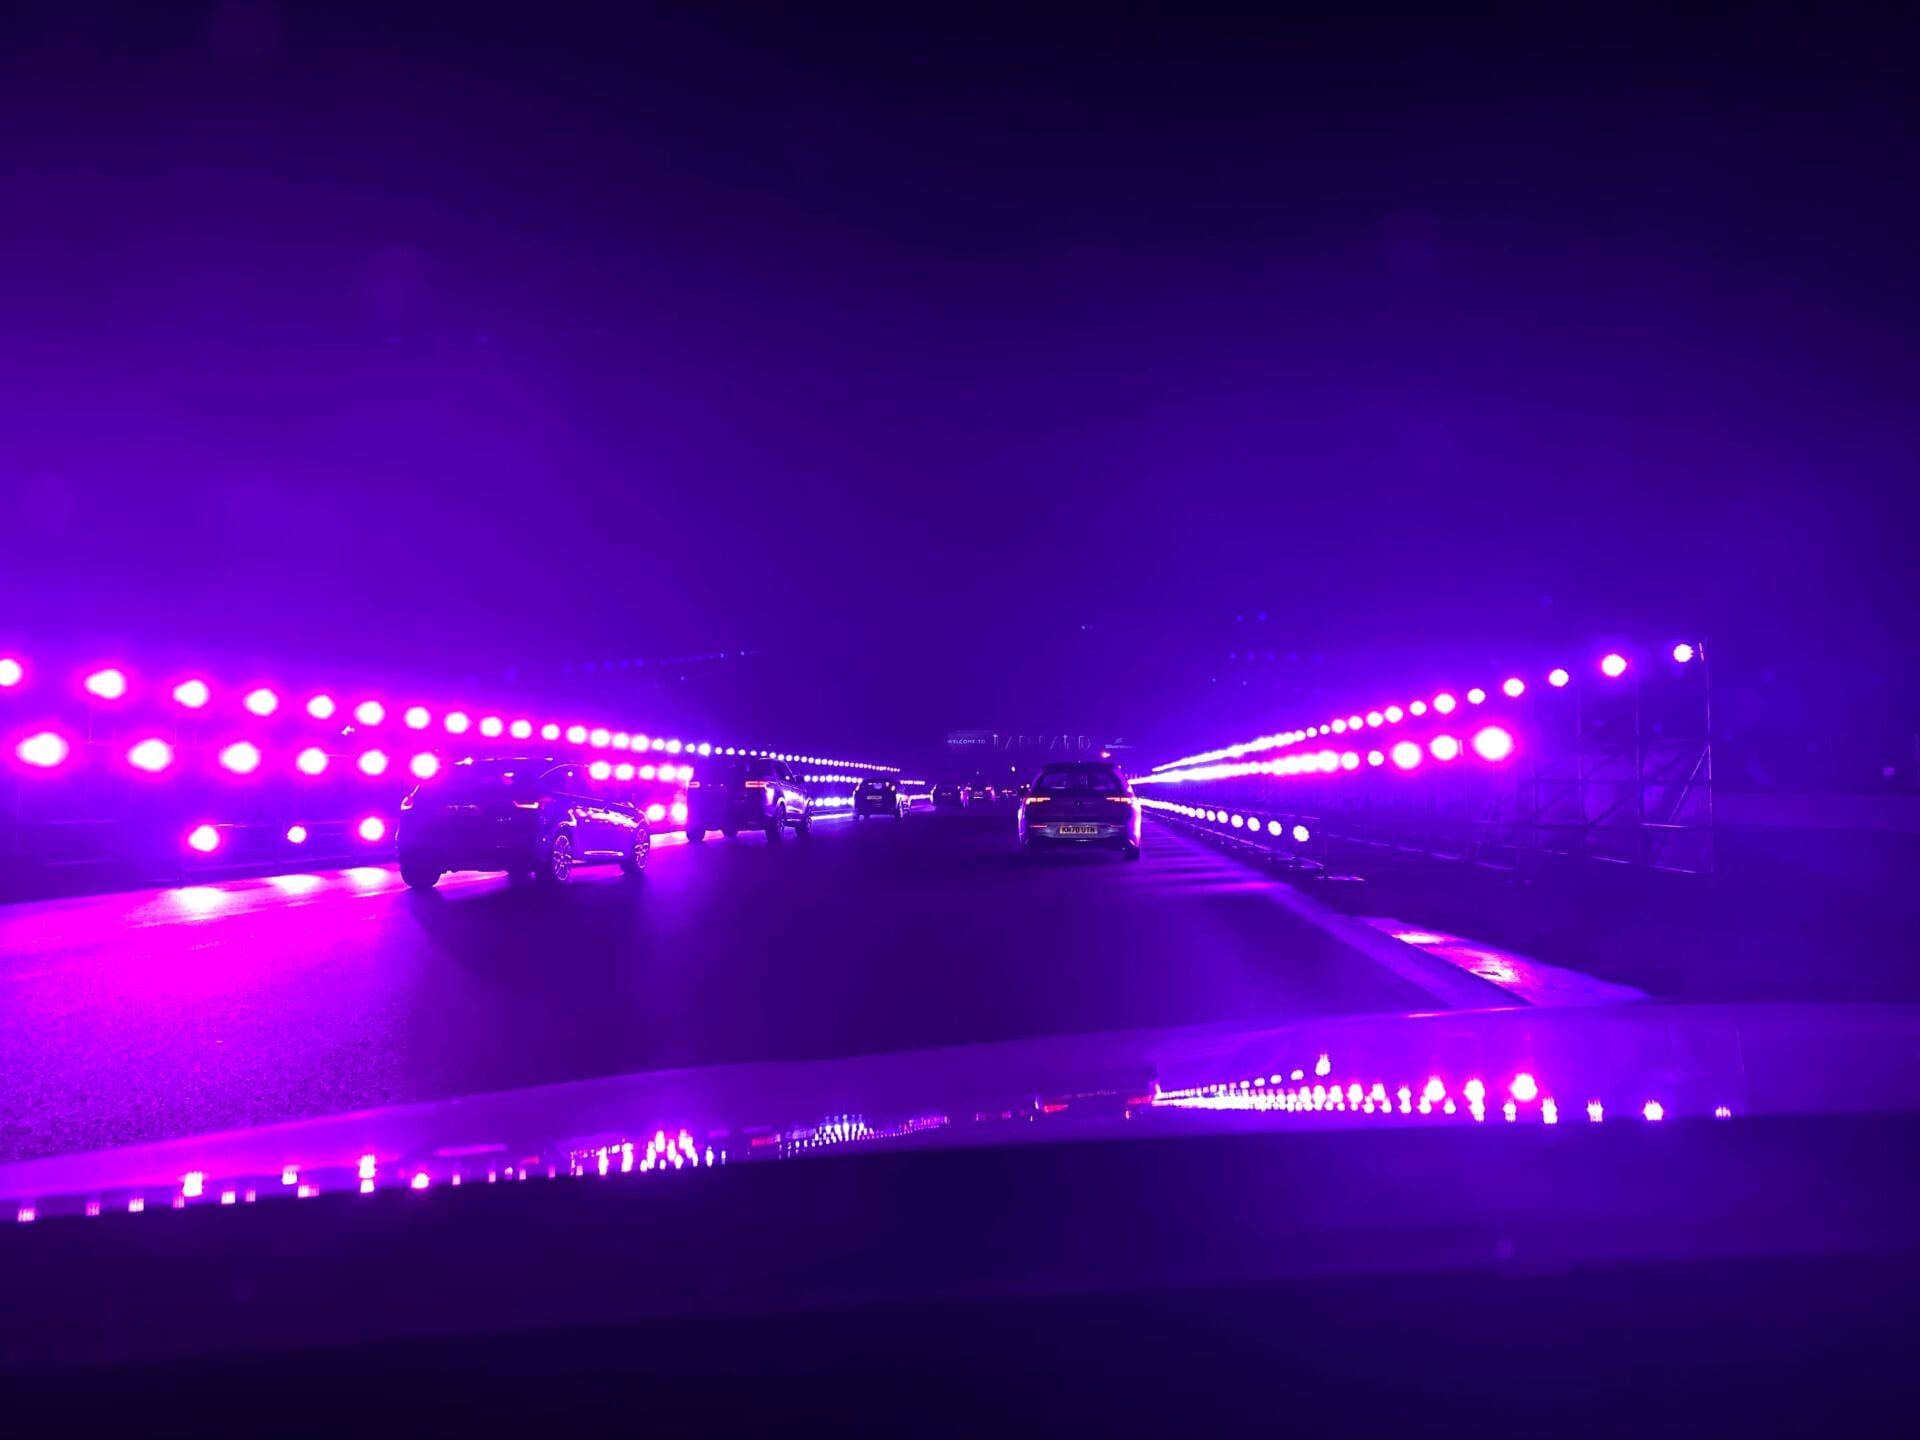 Lights at Lapland Silverstone